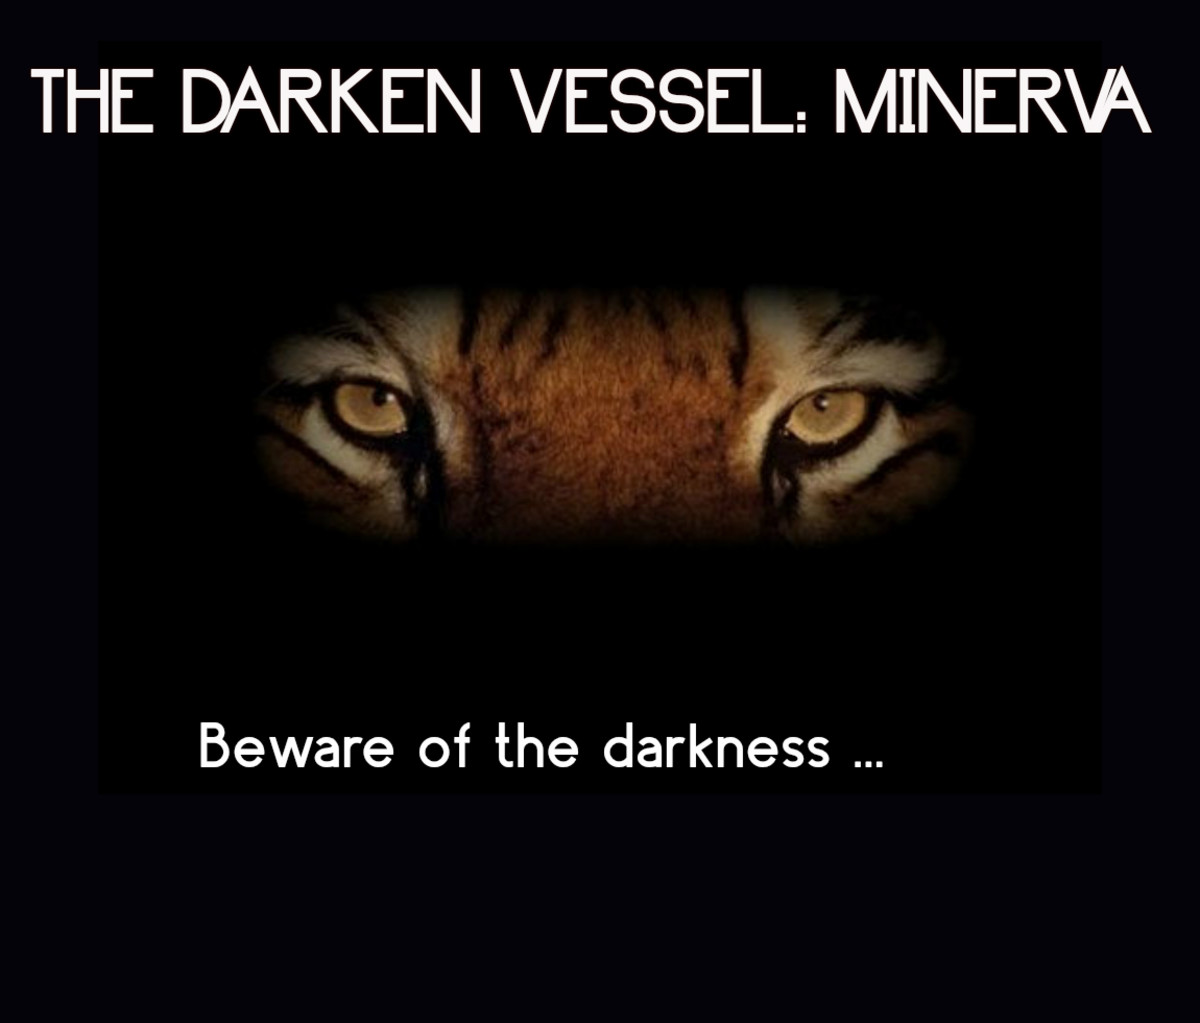 The Darken Vessel: Minerva 8